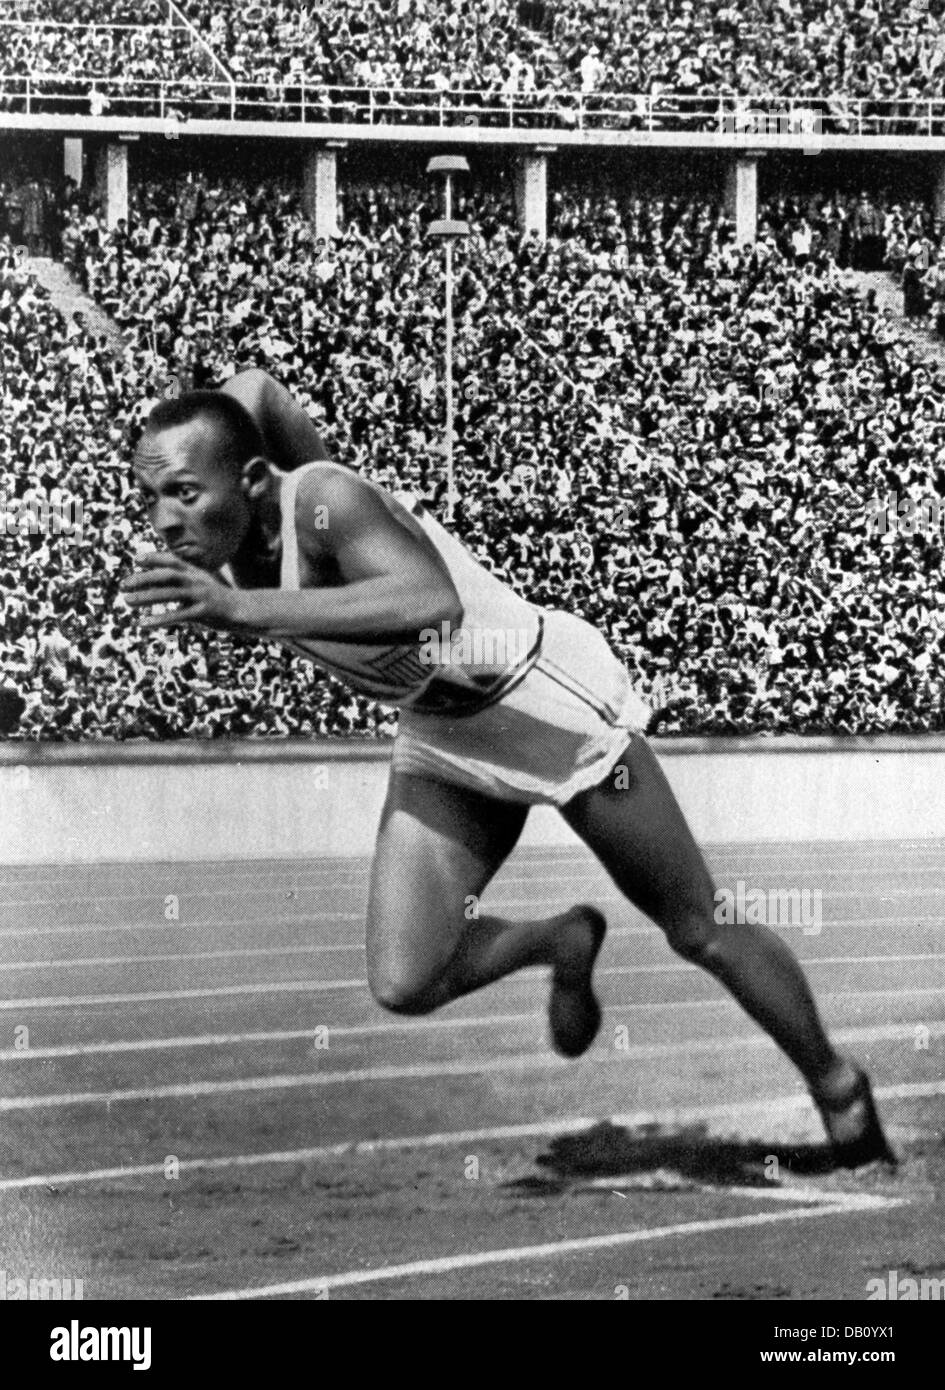 JESSE OWENS (1913-1980) American track and field athlete at the 1936 Olympic Games in Berlin - Stock Image